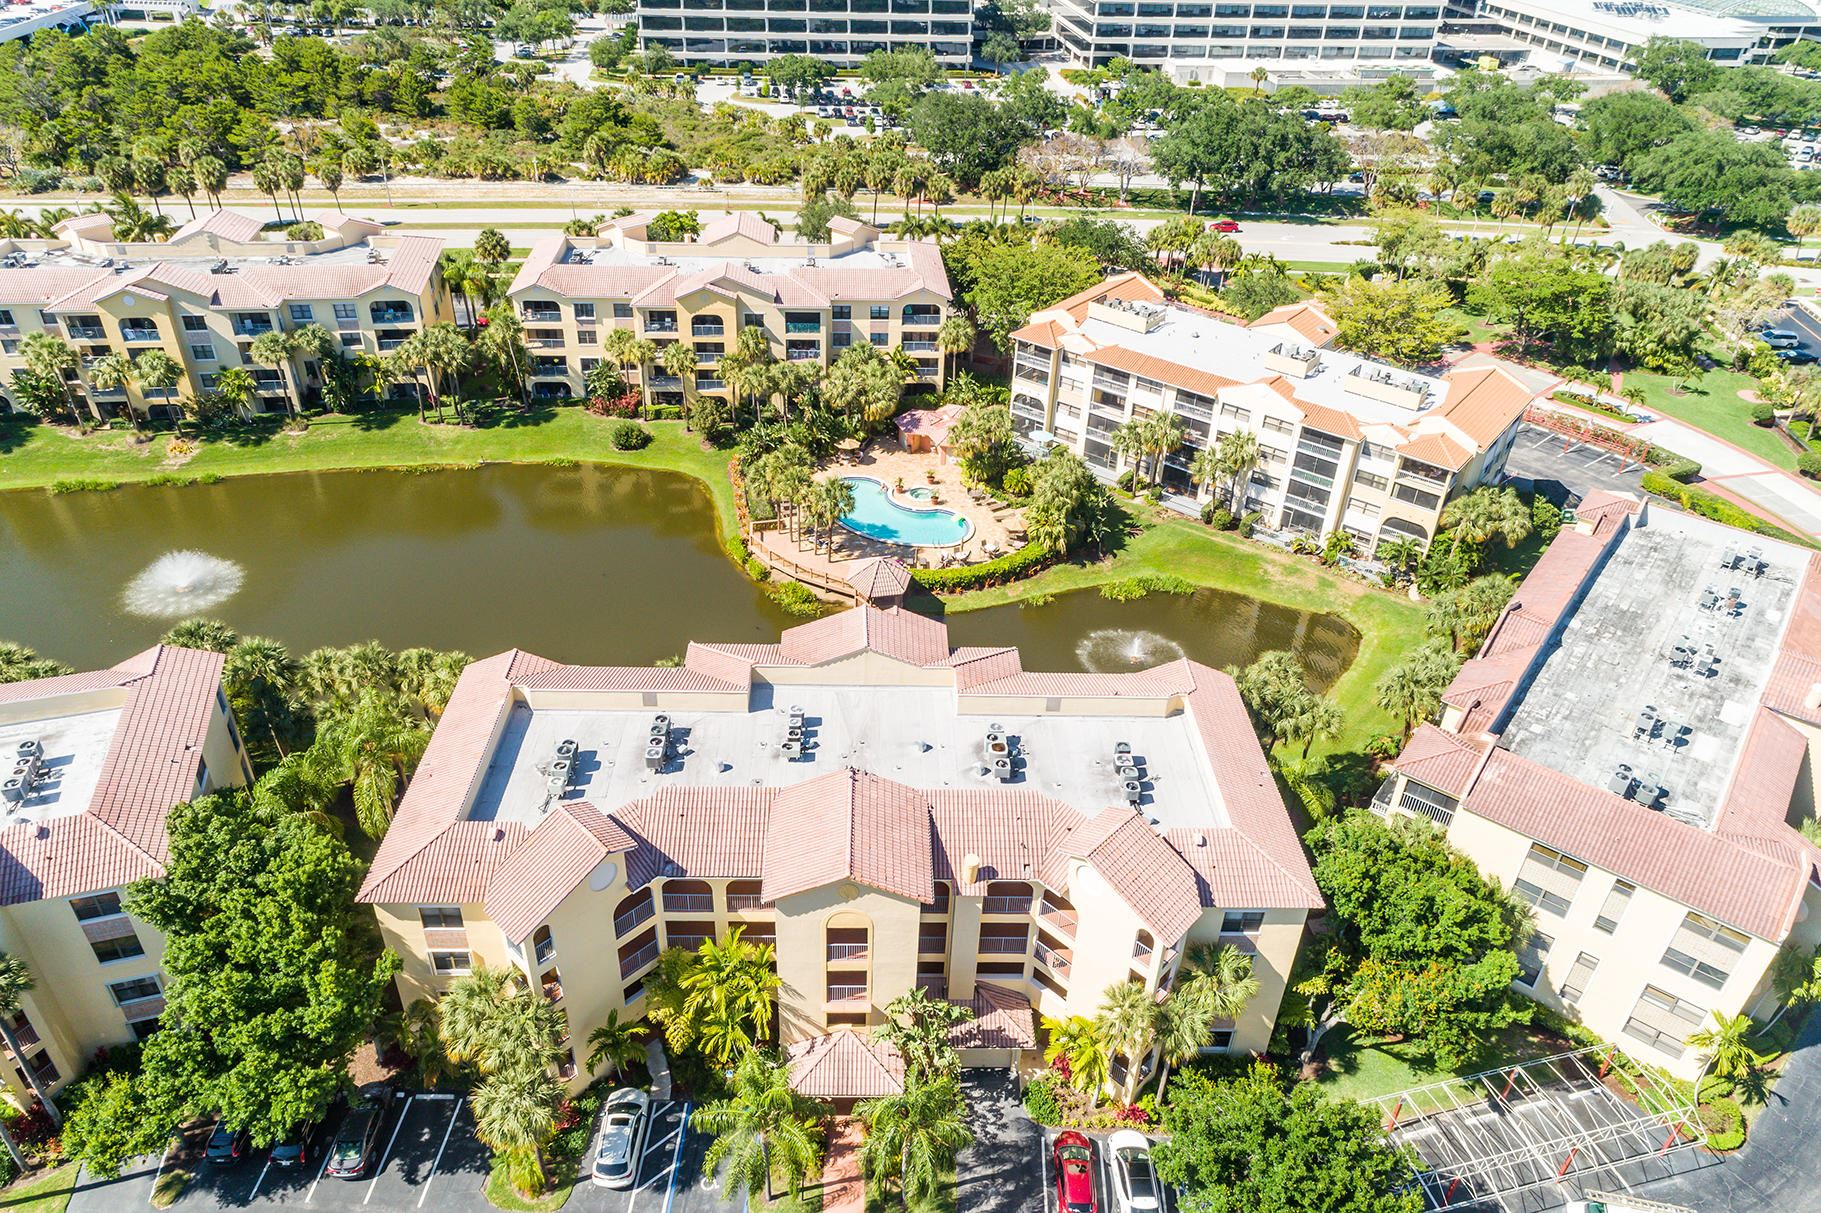 Photo of 500 Uno Lago Drive #303, Juno Beach, FL 33408 (MLS # RX-10621311)